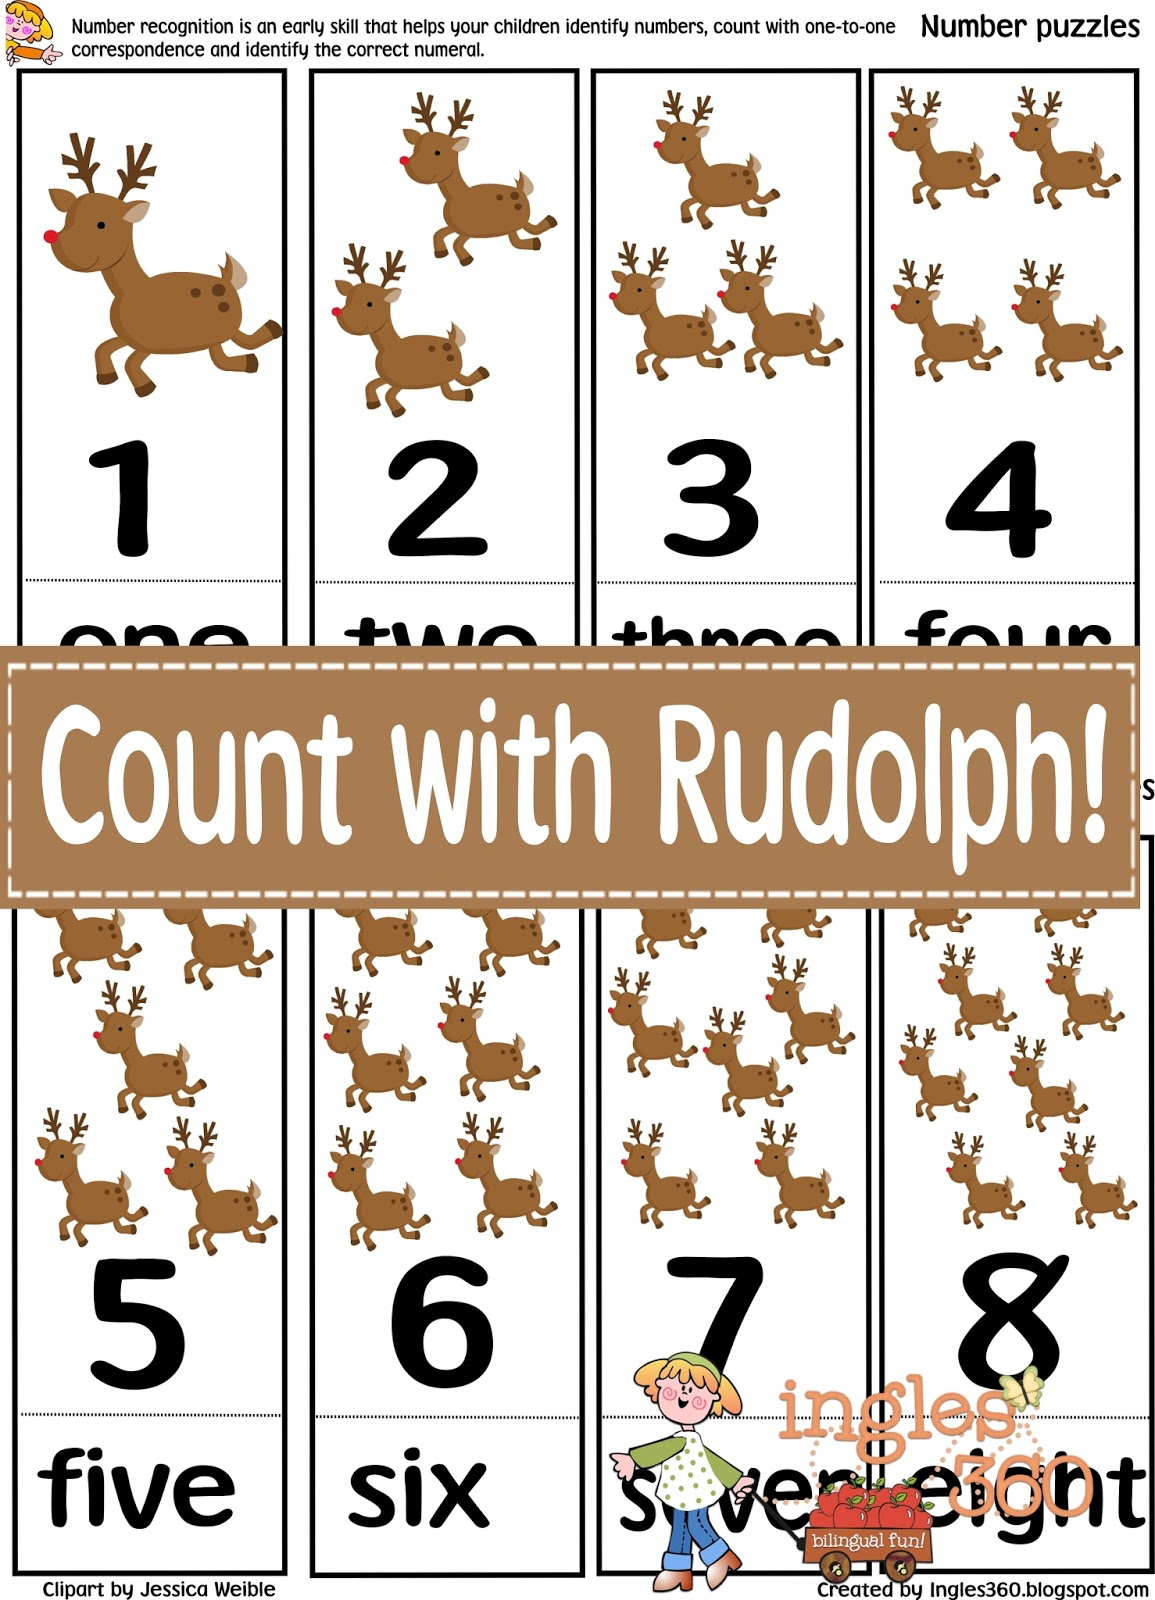 Count With Rudolph